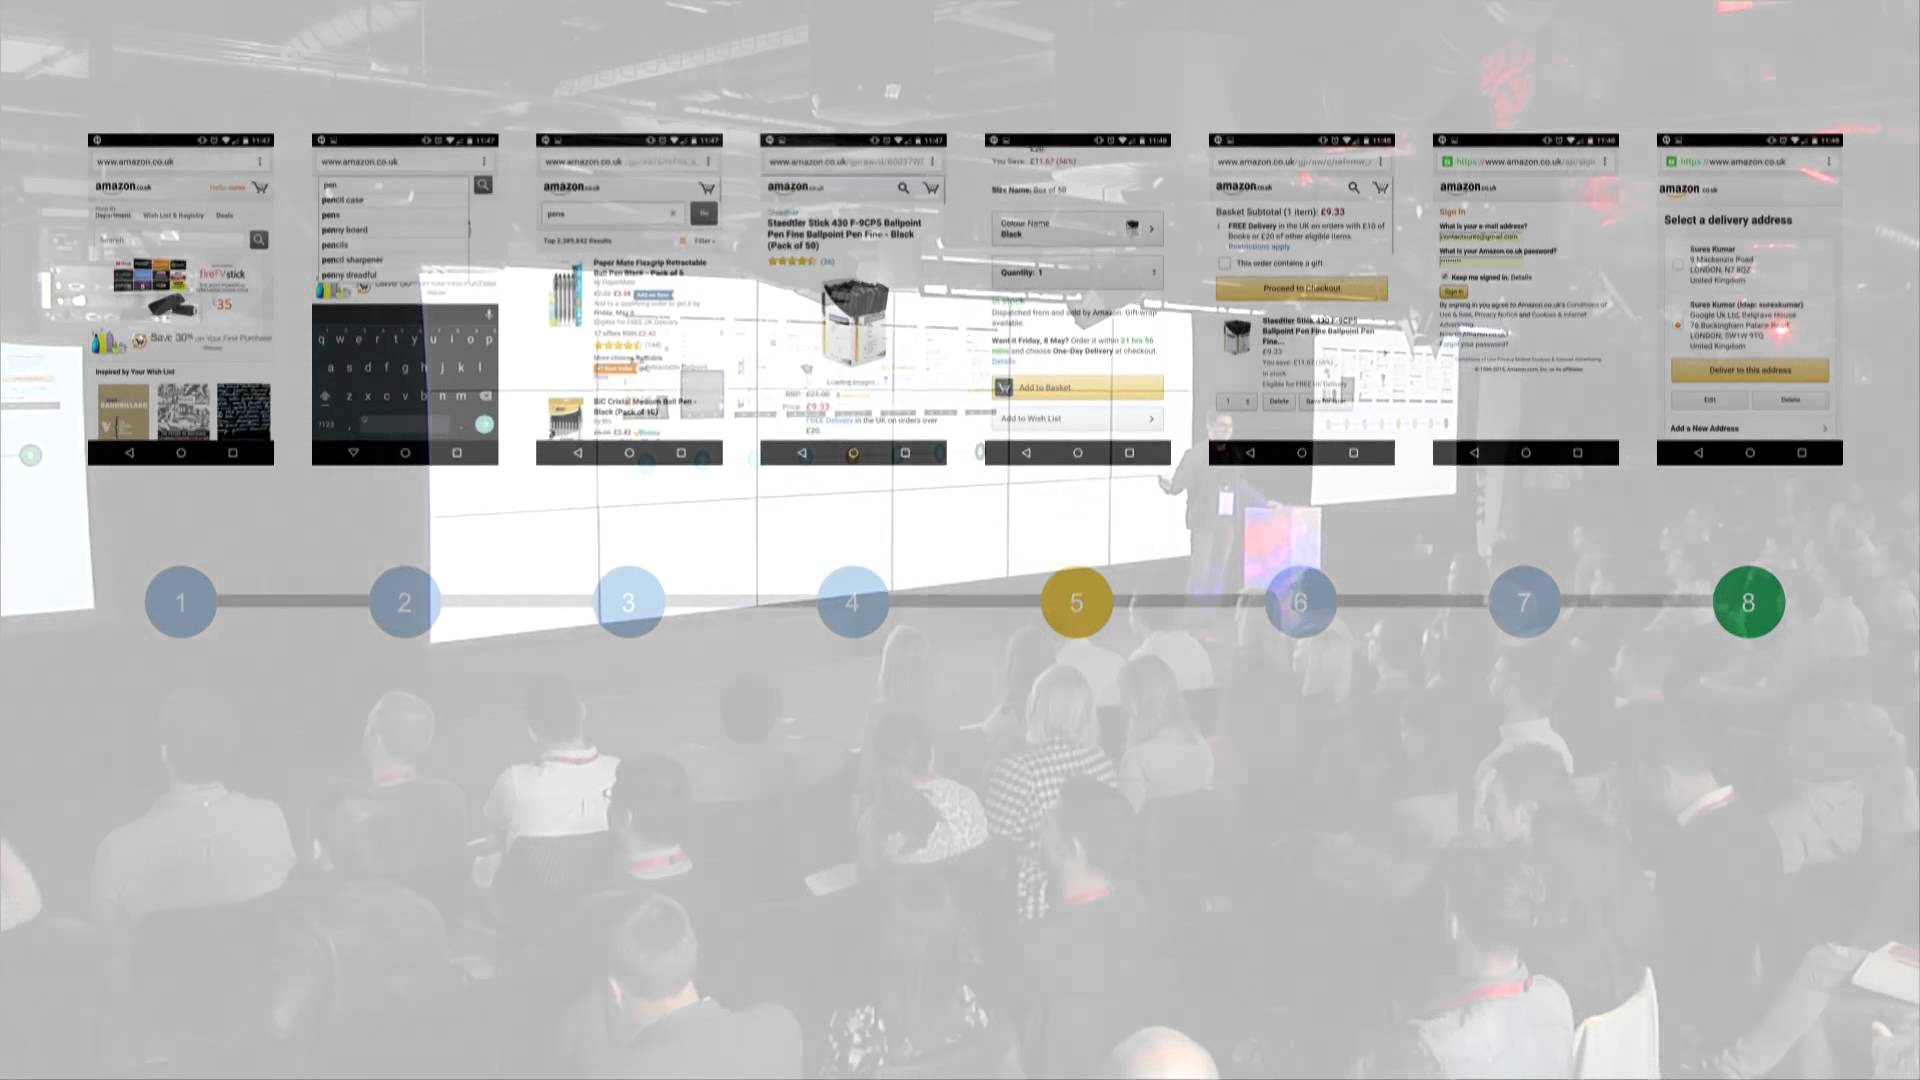 Rock Mobile: Designing the Mobile User Experience